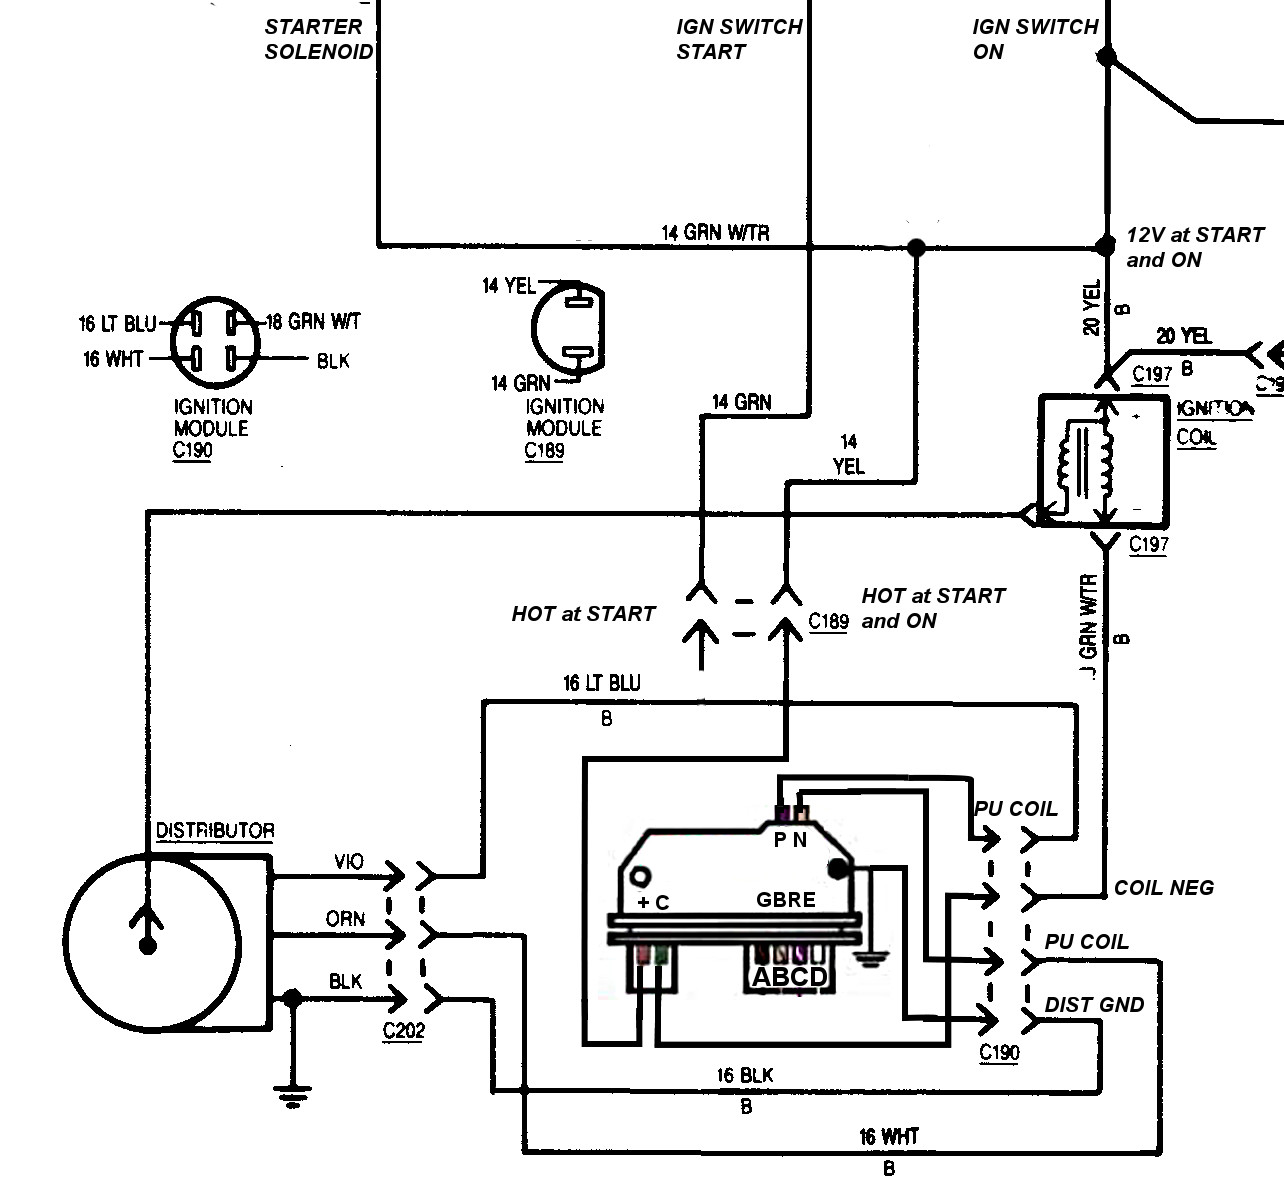 Wiring Diagram For Ignition Control Module In 1996 Ford